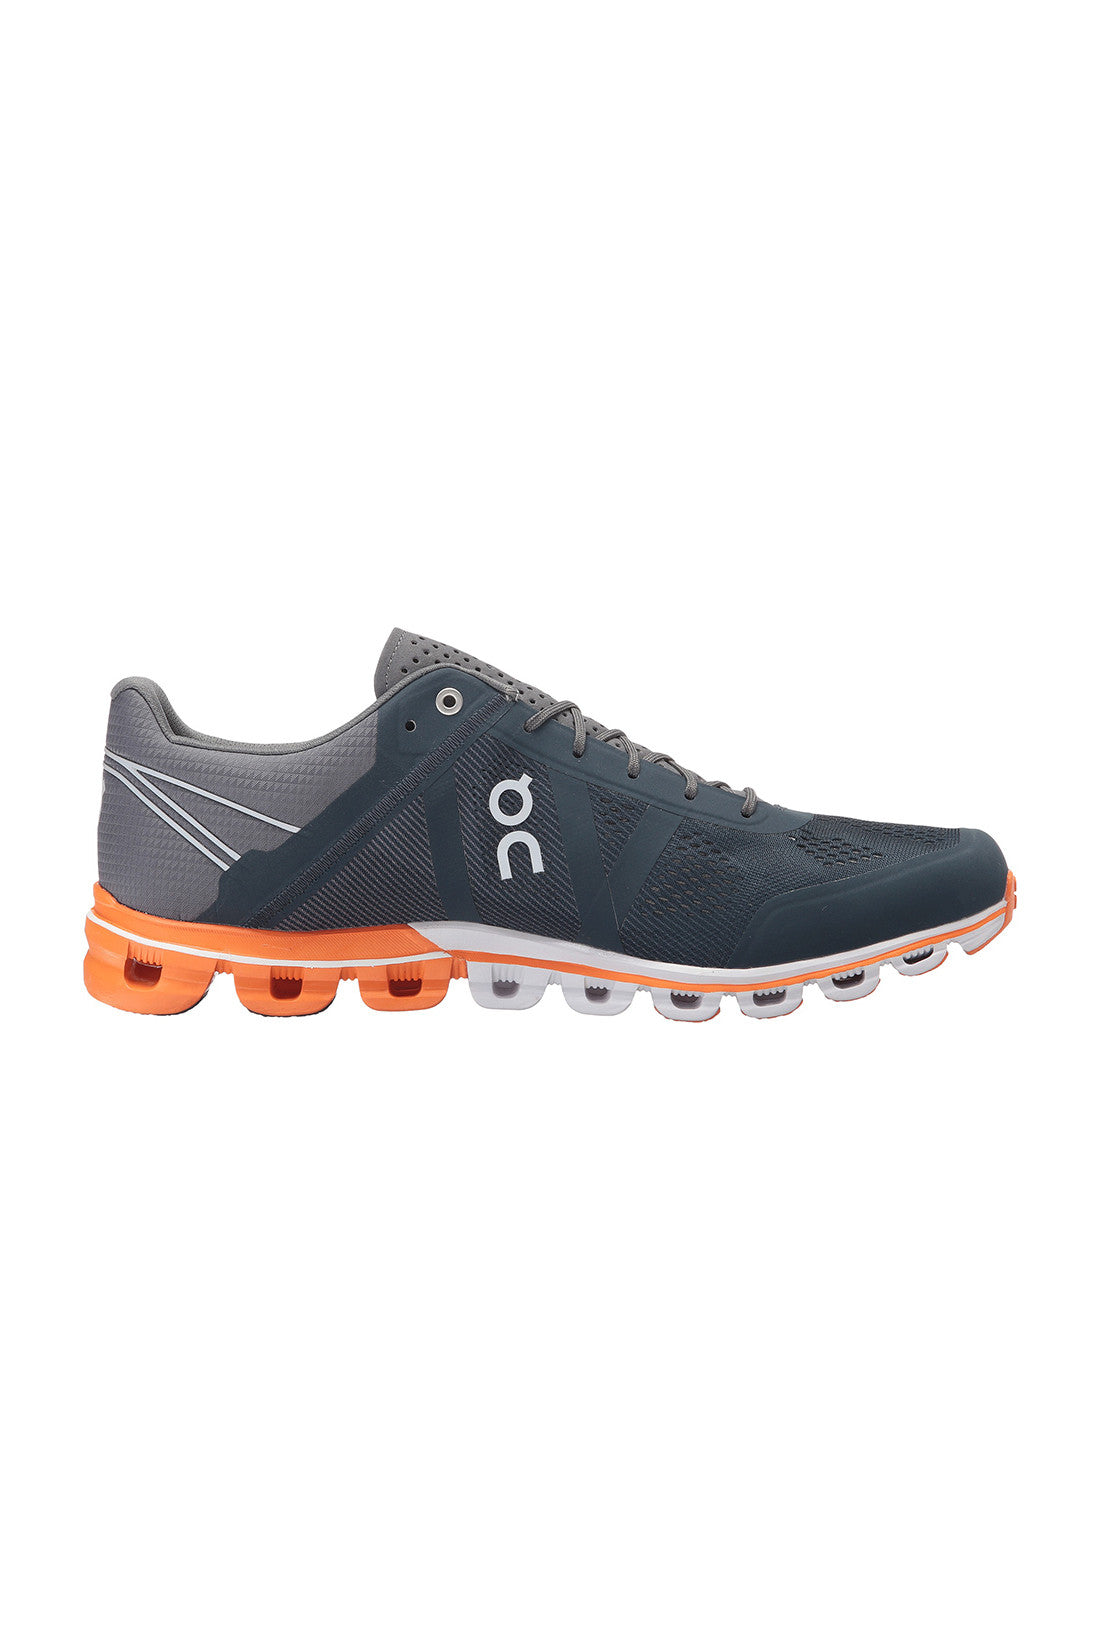 Men's ON Cloudflow - Rock Orange